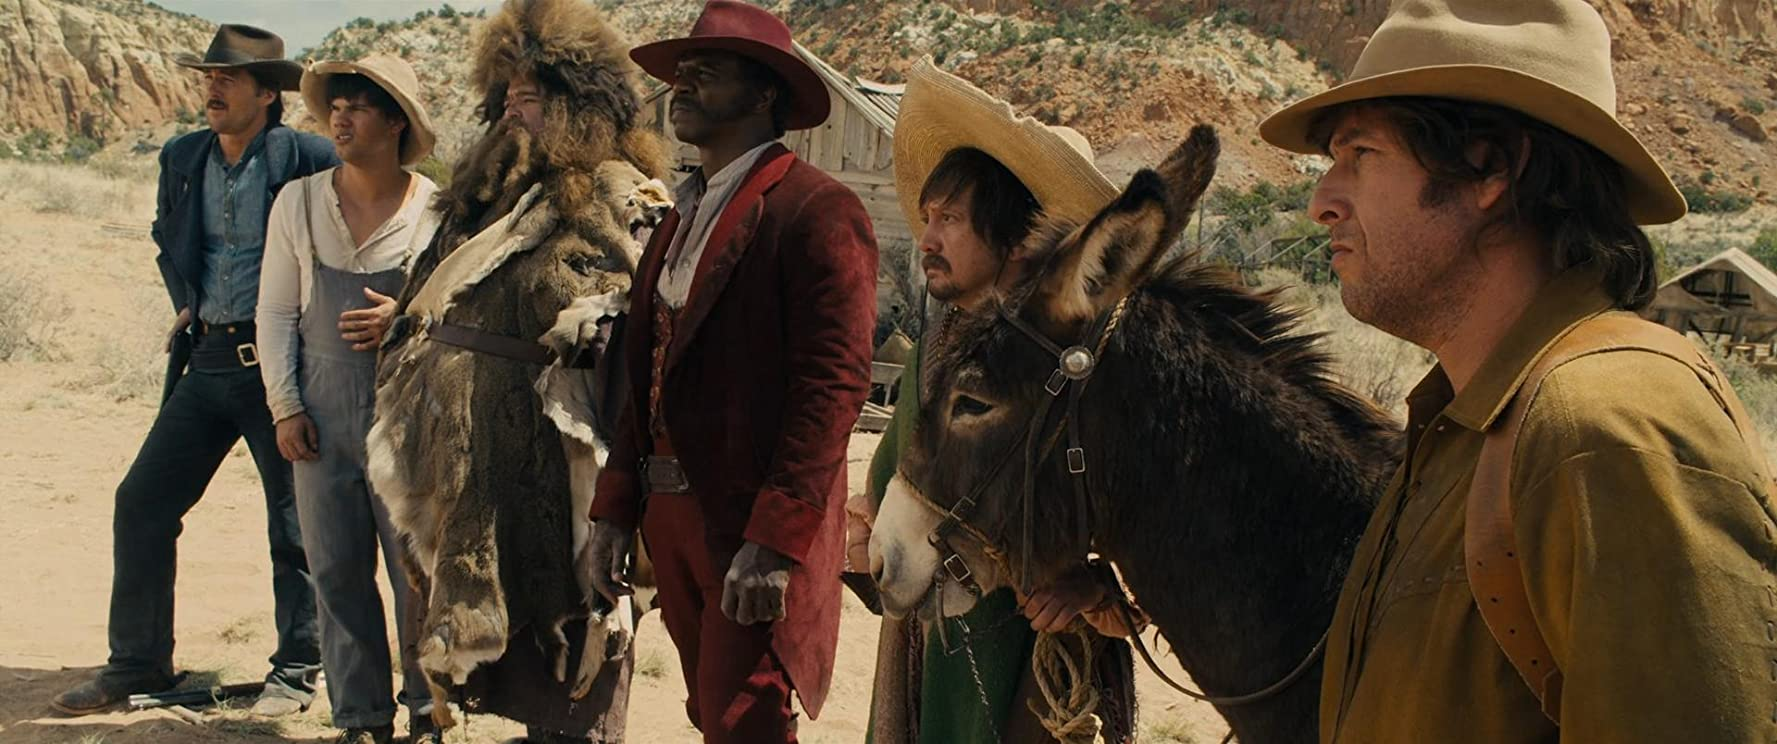 the ridiculous land price in hk The ridiculous 6 is a 2015 american western action comedy film directed by frank coraci and written by tim herlihy and adam sandler it stars sandler, terry crews, jorge garcia, taylor lautner, rob schneider, and luke wilson.